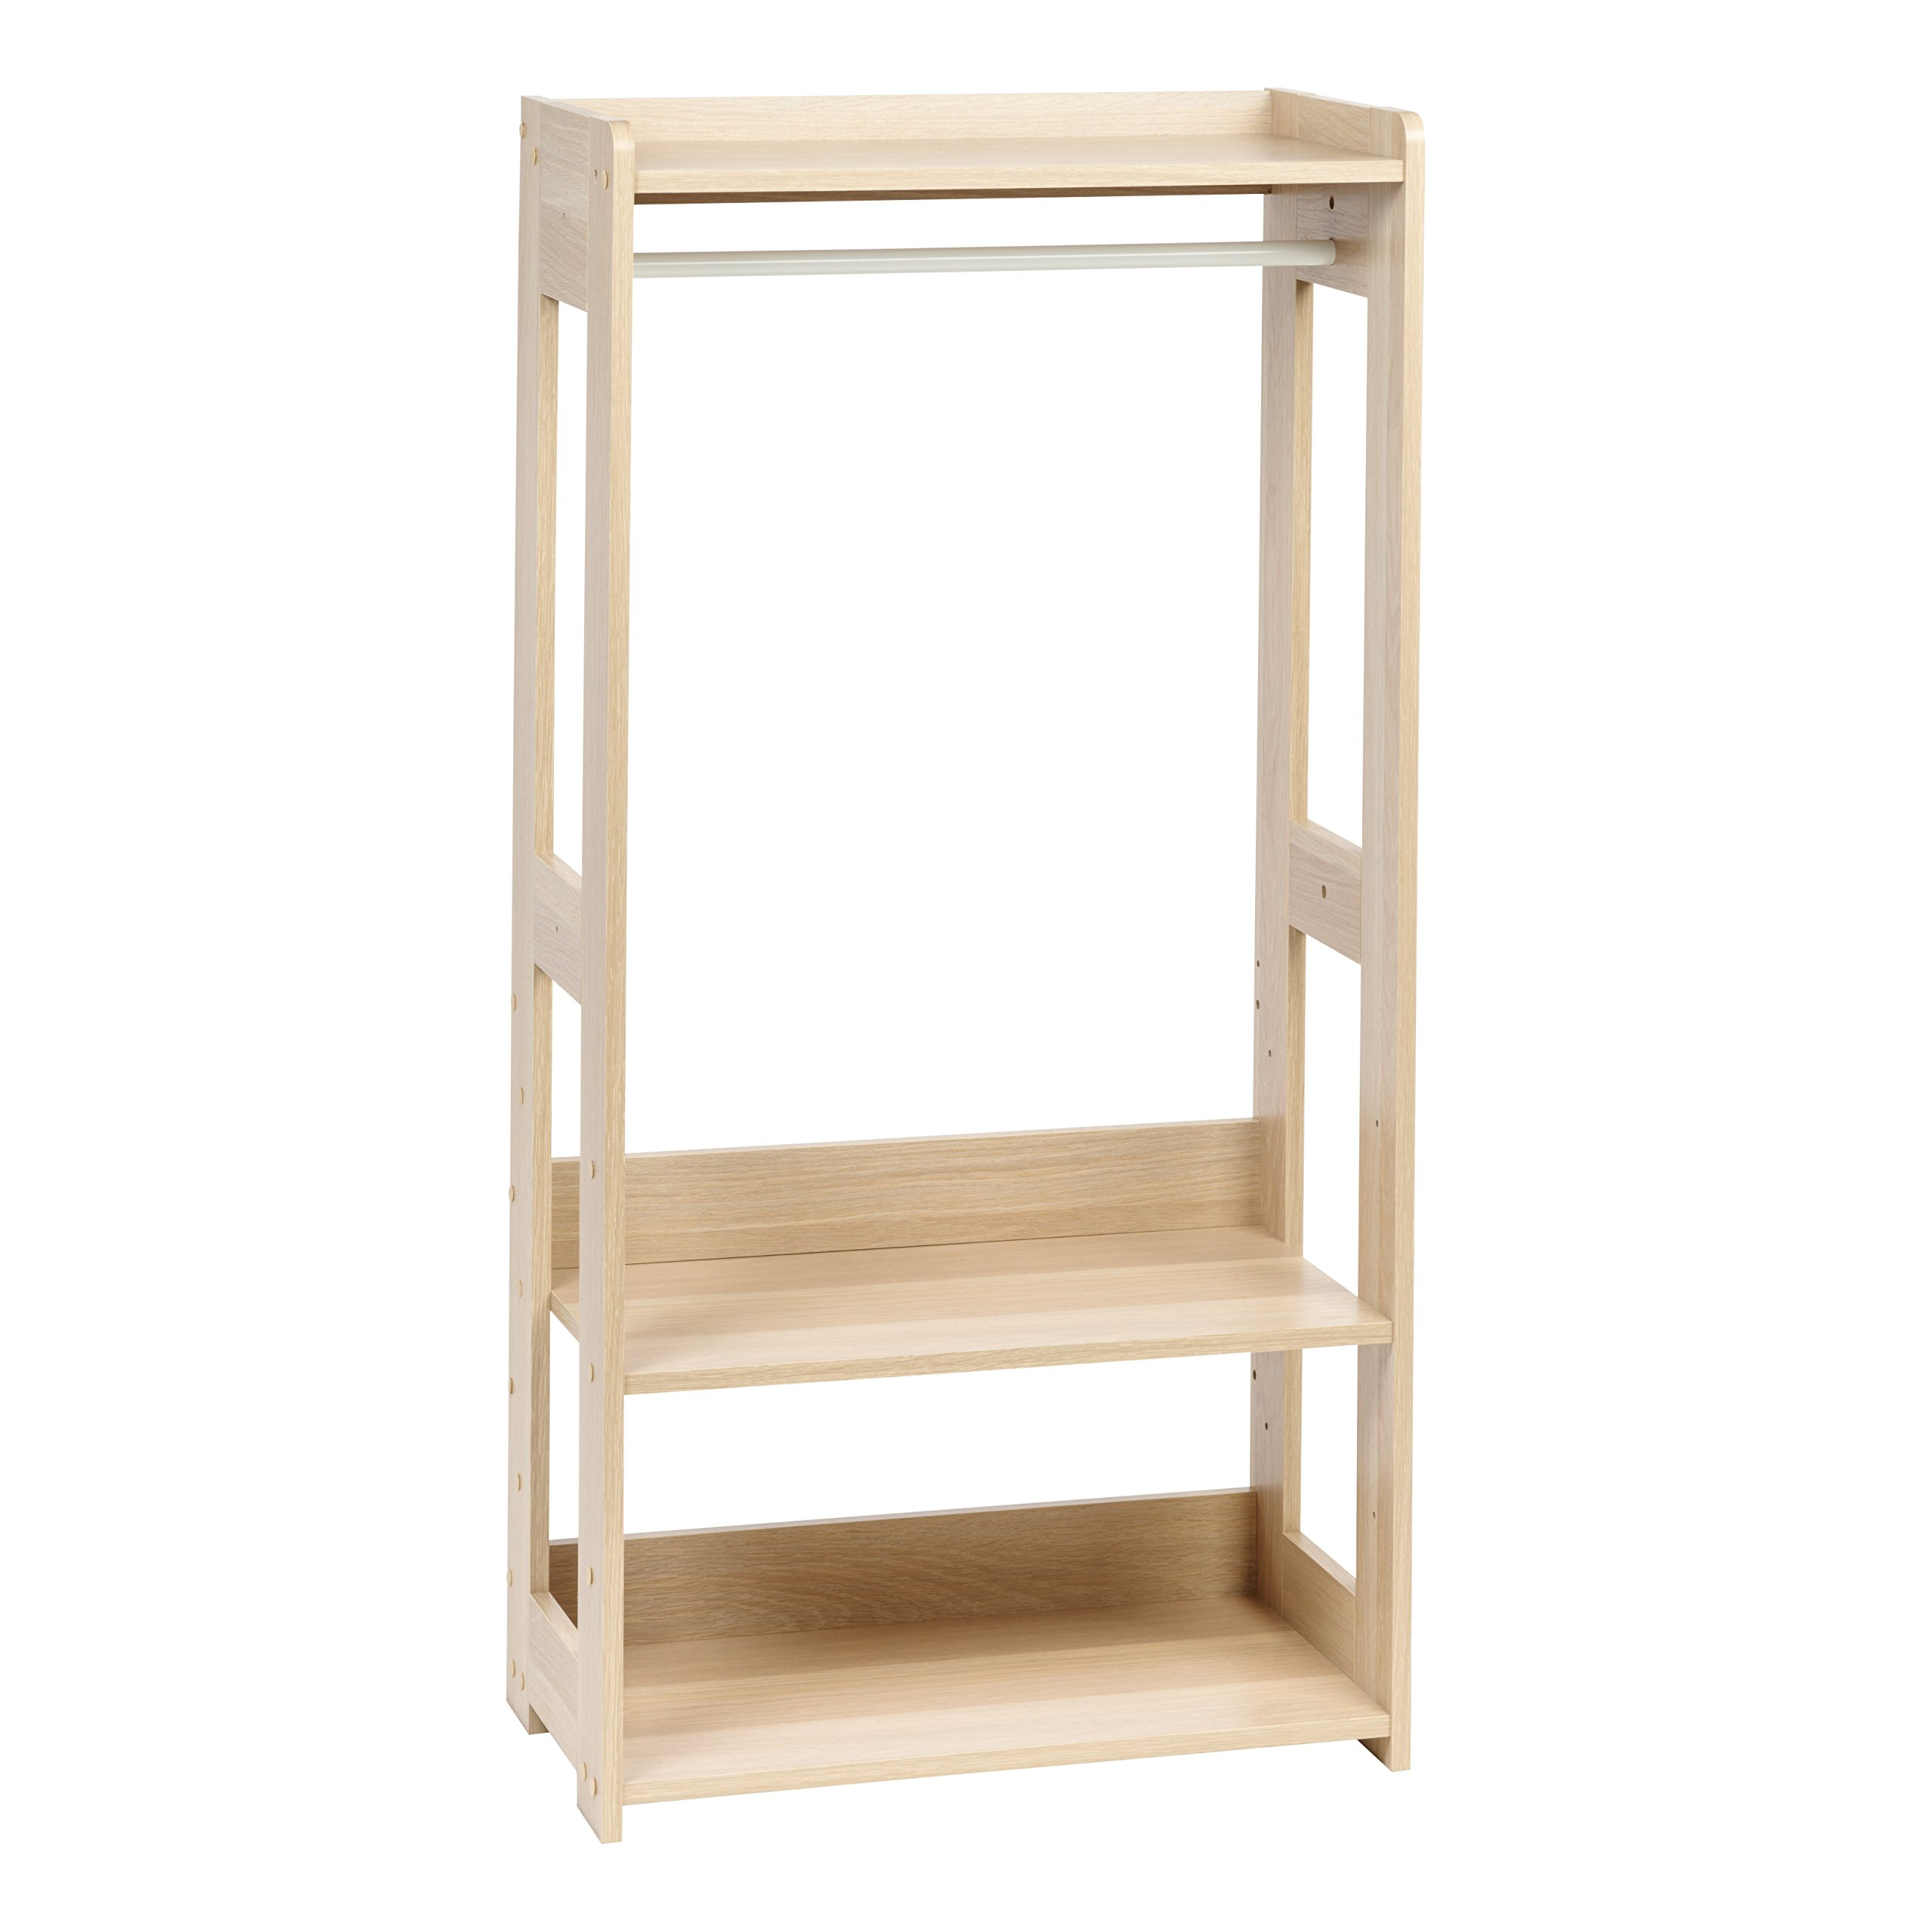 IRIS Compact Wood Garment Rack, Natural